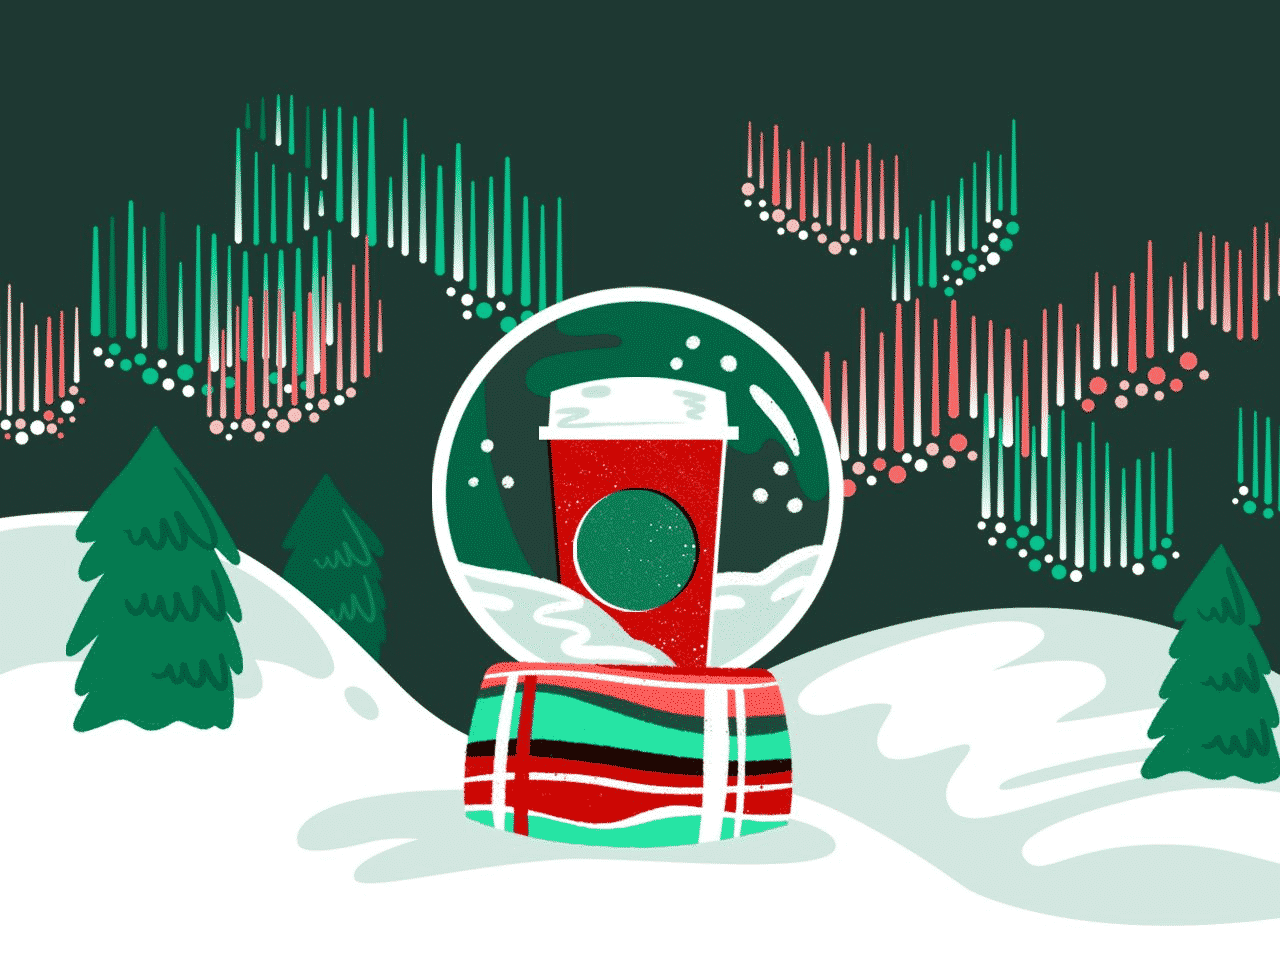 Starbucks Holiday Campaign email theme